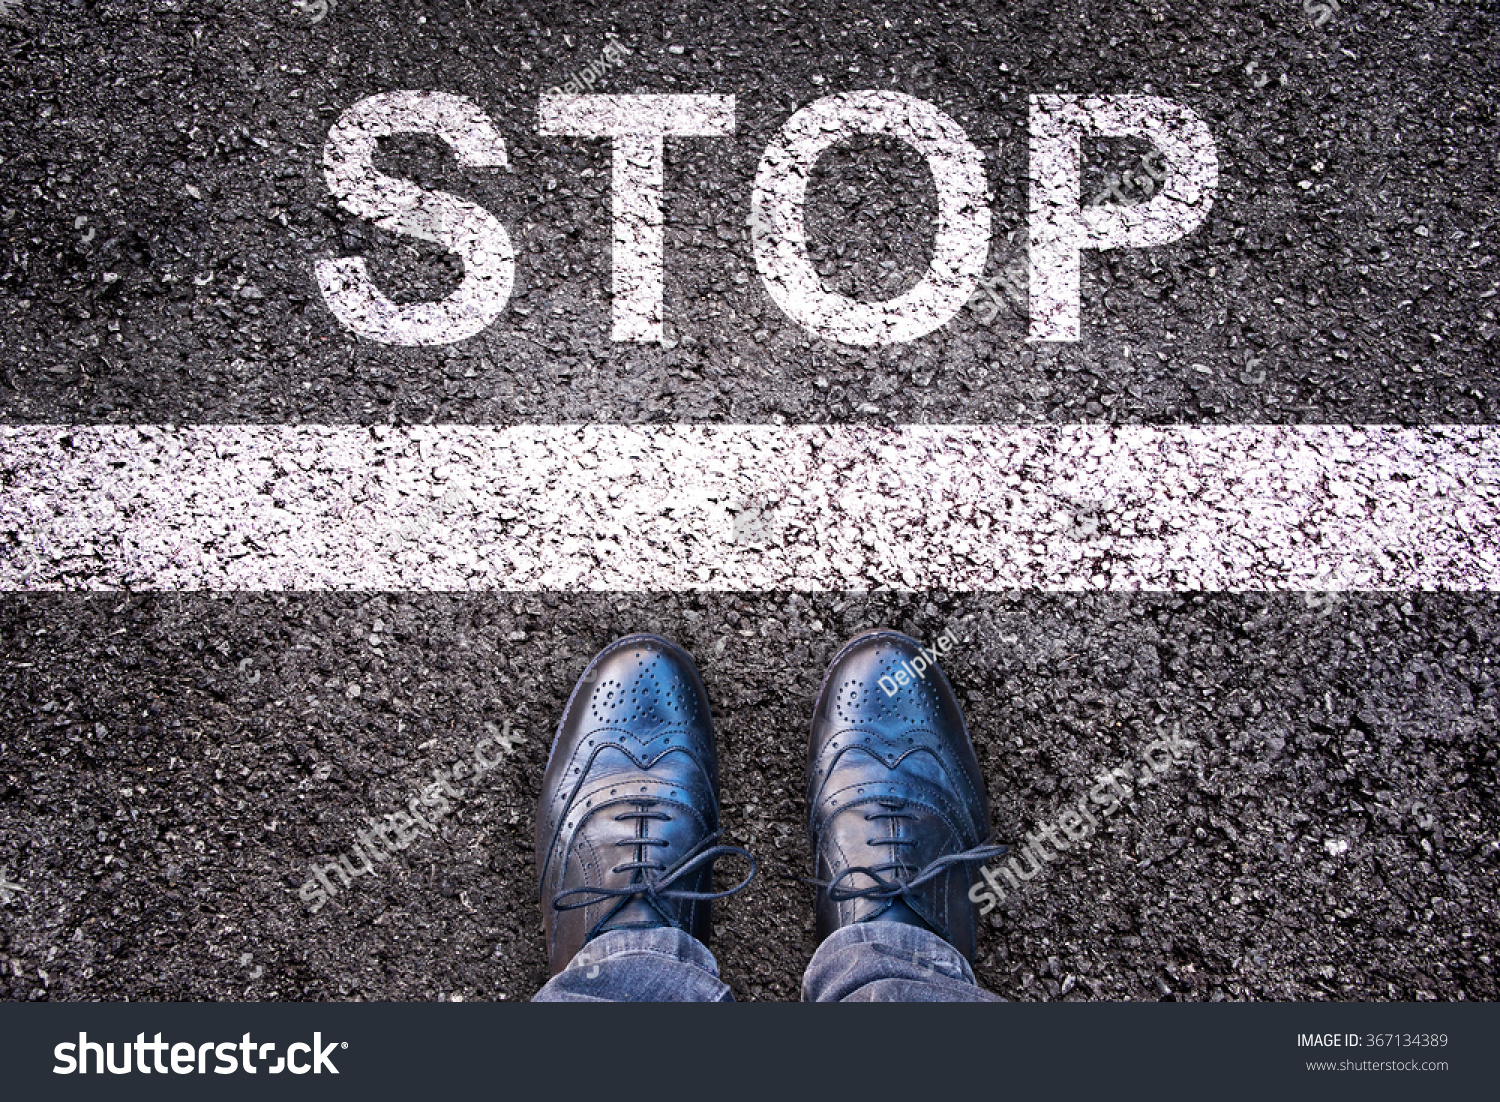 Word Stop written on an asphalt road with legs and shoes #367134389